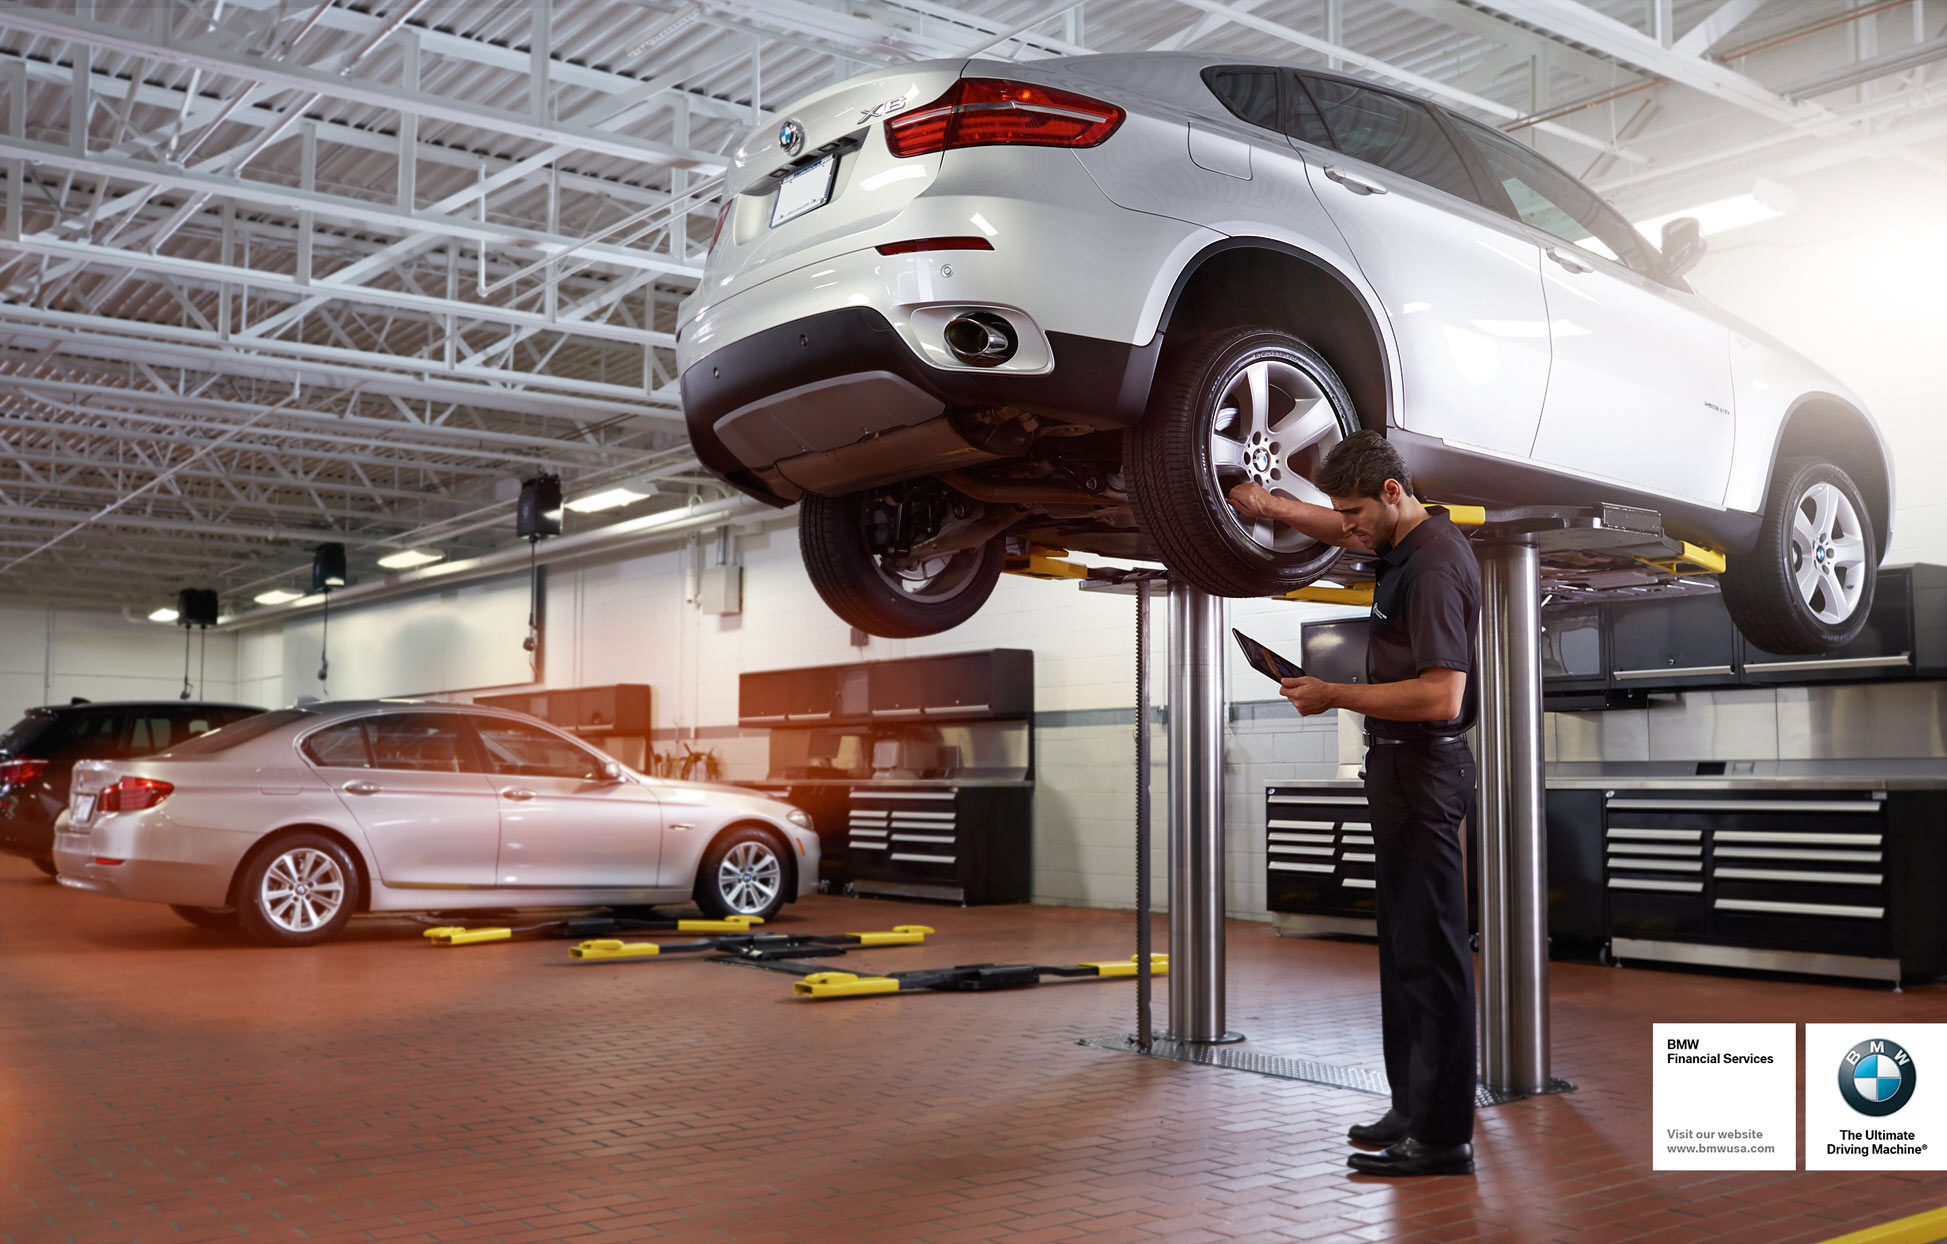 Mark DeLong - Commercial Photography - Man in a car garage inspecting the wheel base of a BMW that is raised up in a lift.